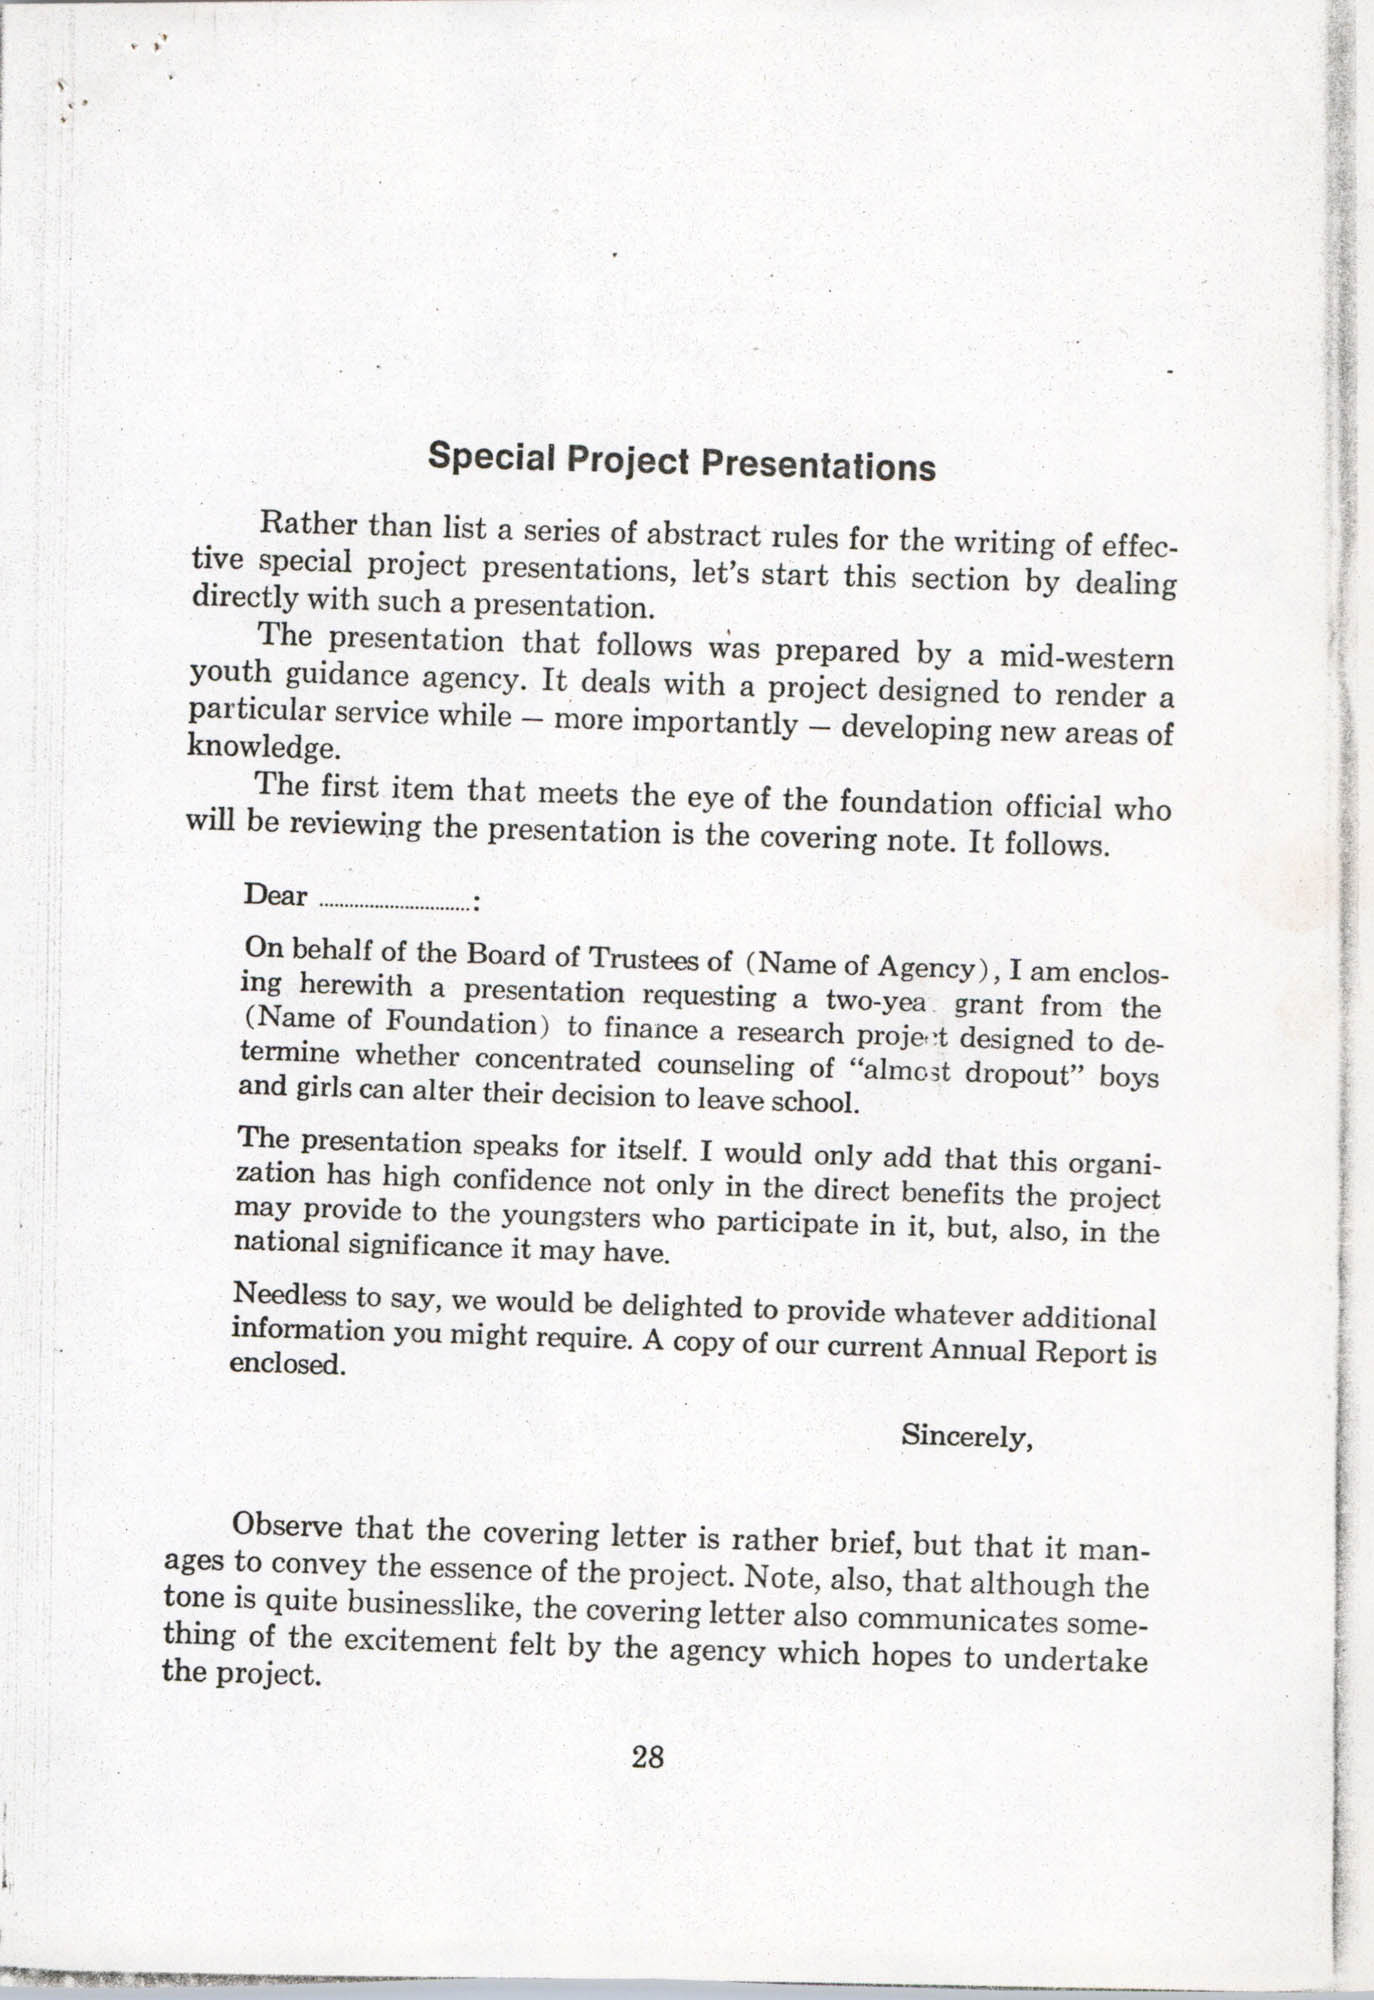 How To Write Successful Foundation Presentations, Page 28